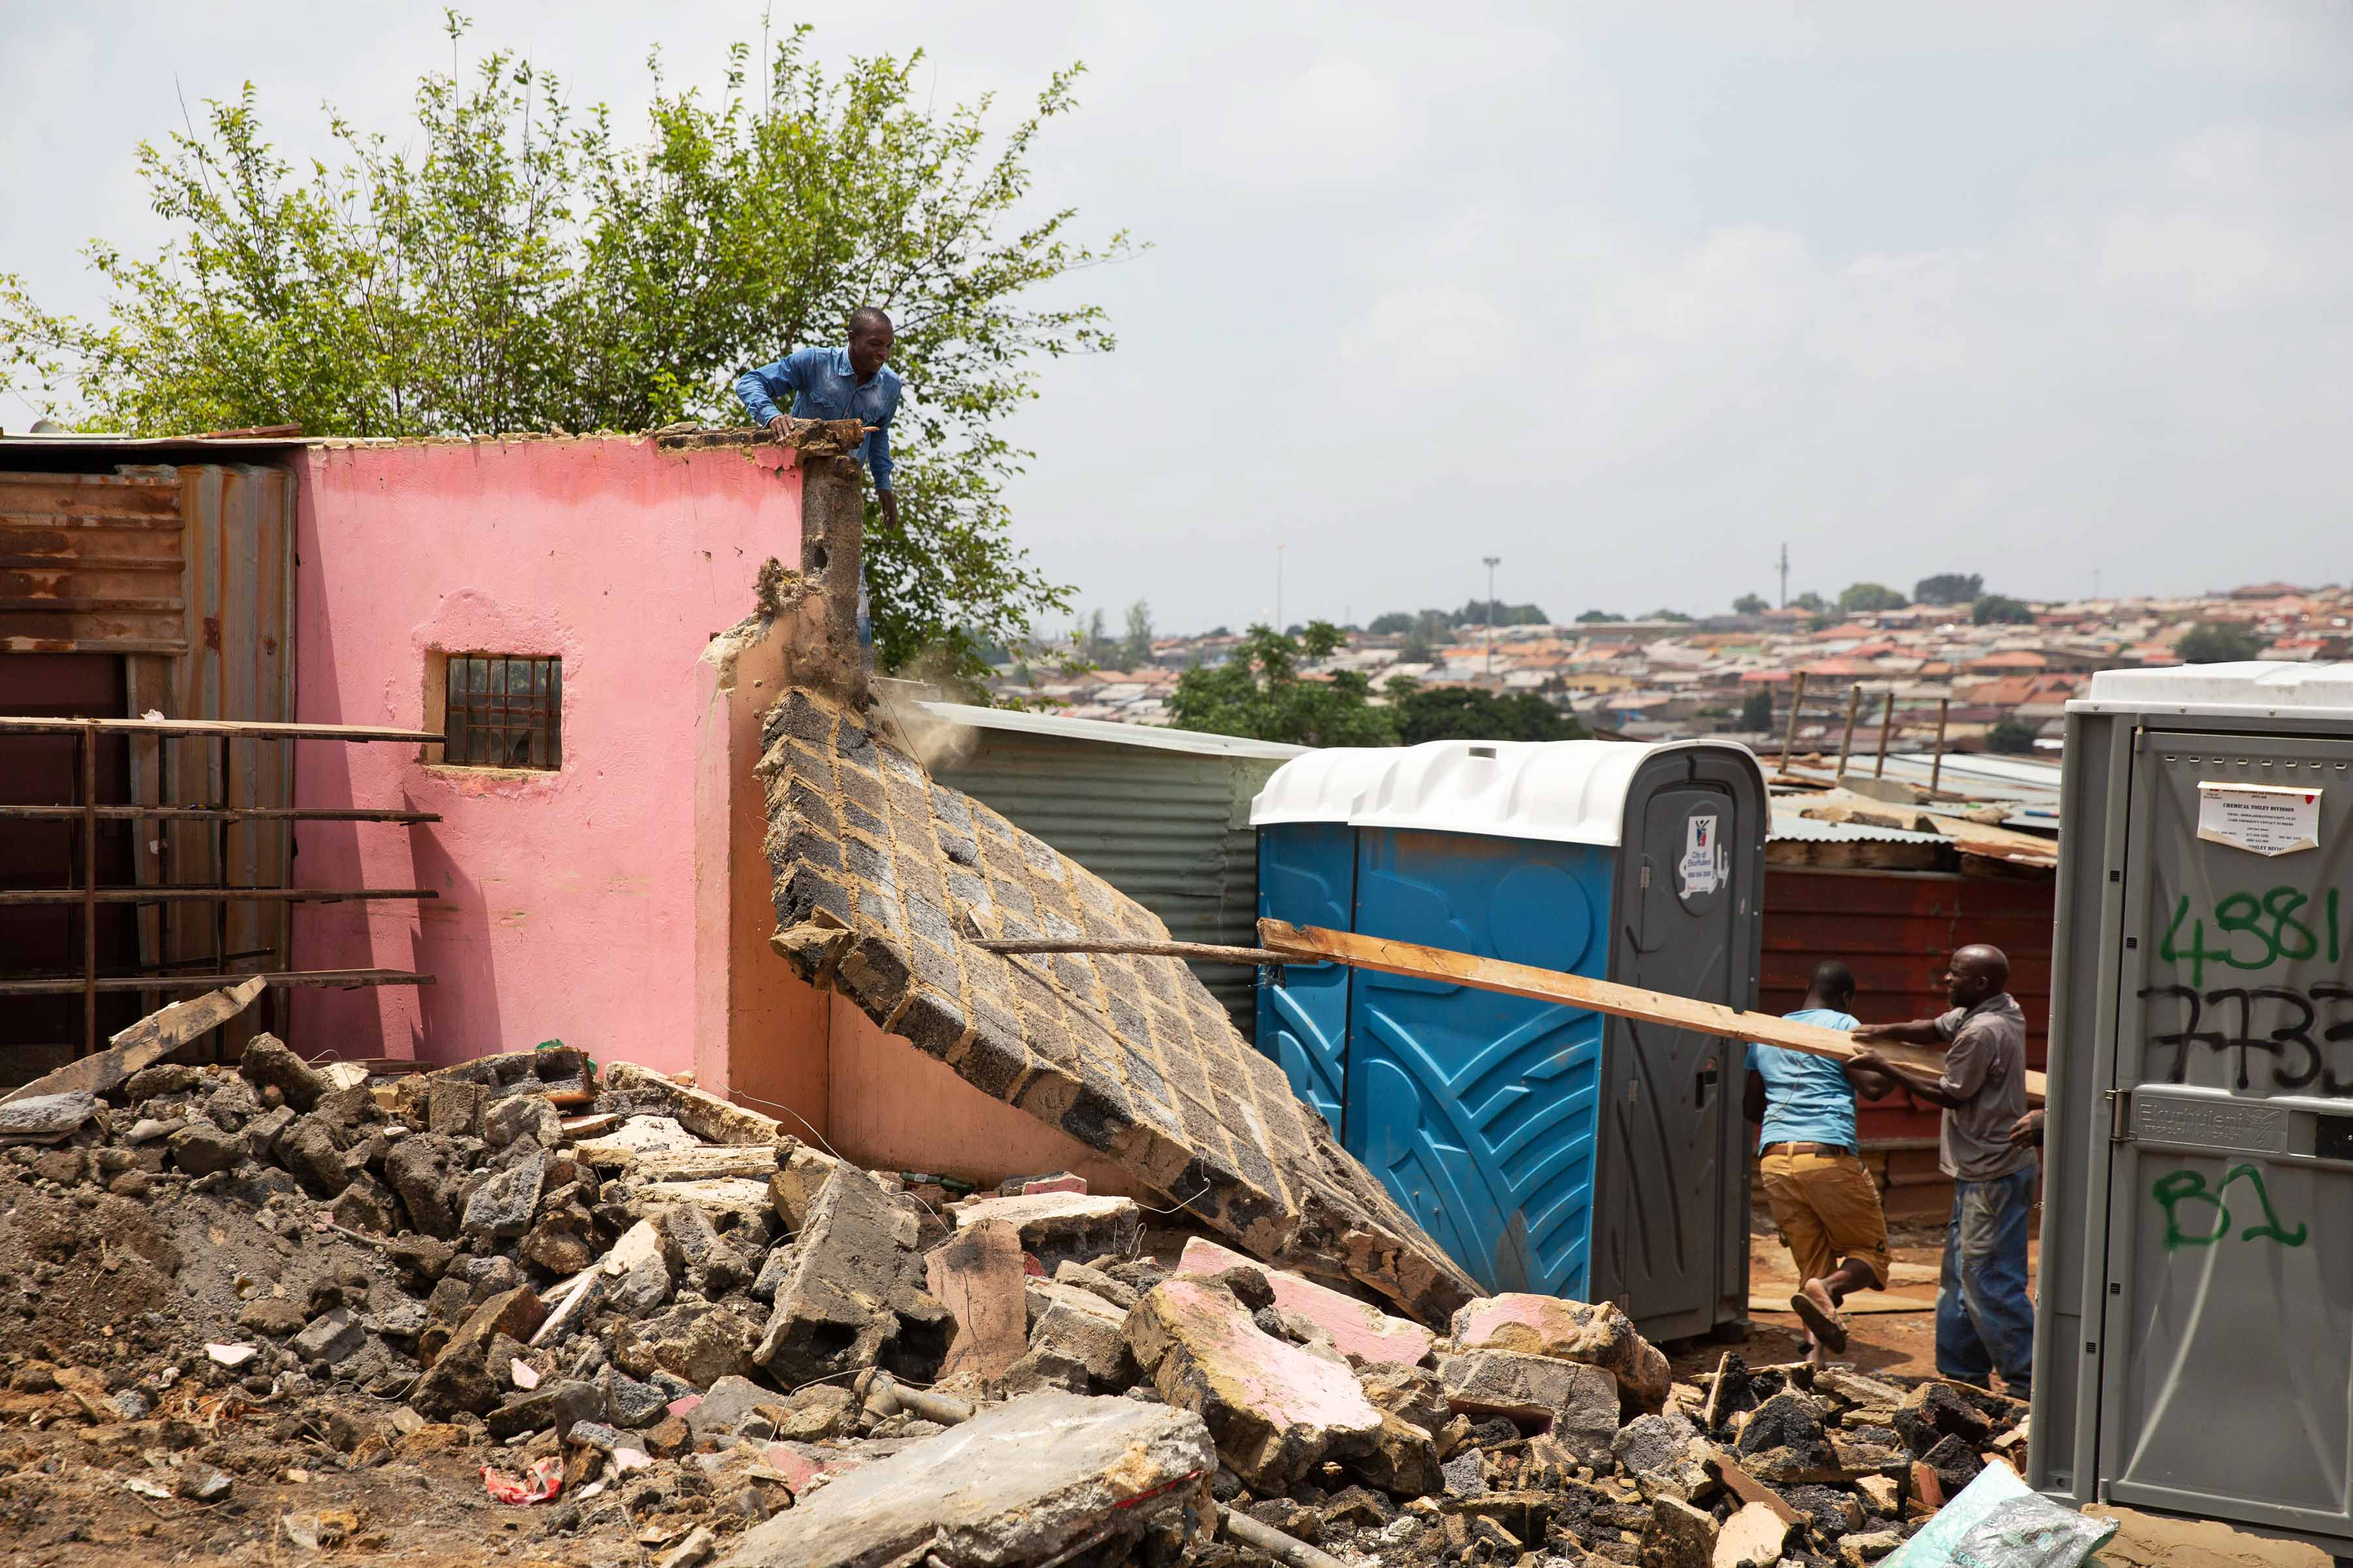 21 November 2019. Demolishers breaking down a house in Tembisa as part of the reblocking process.